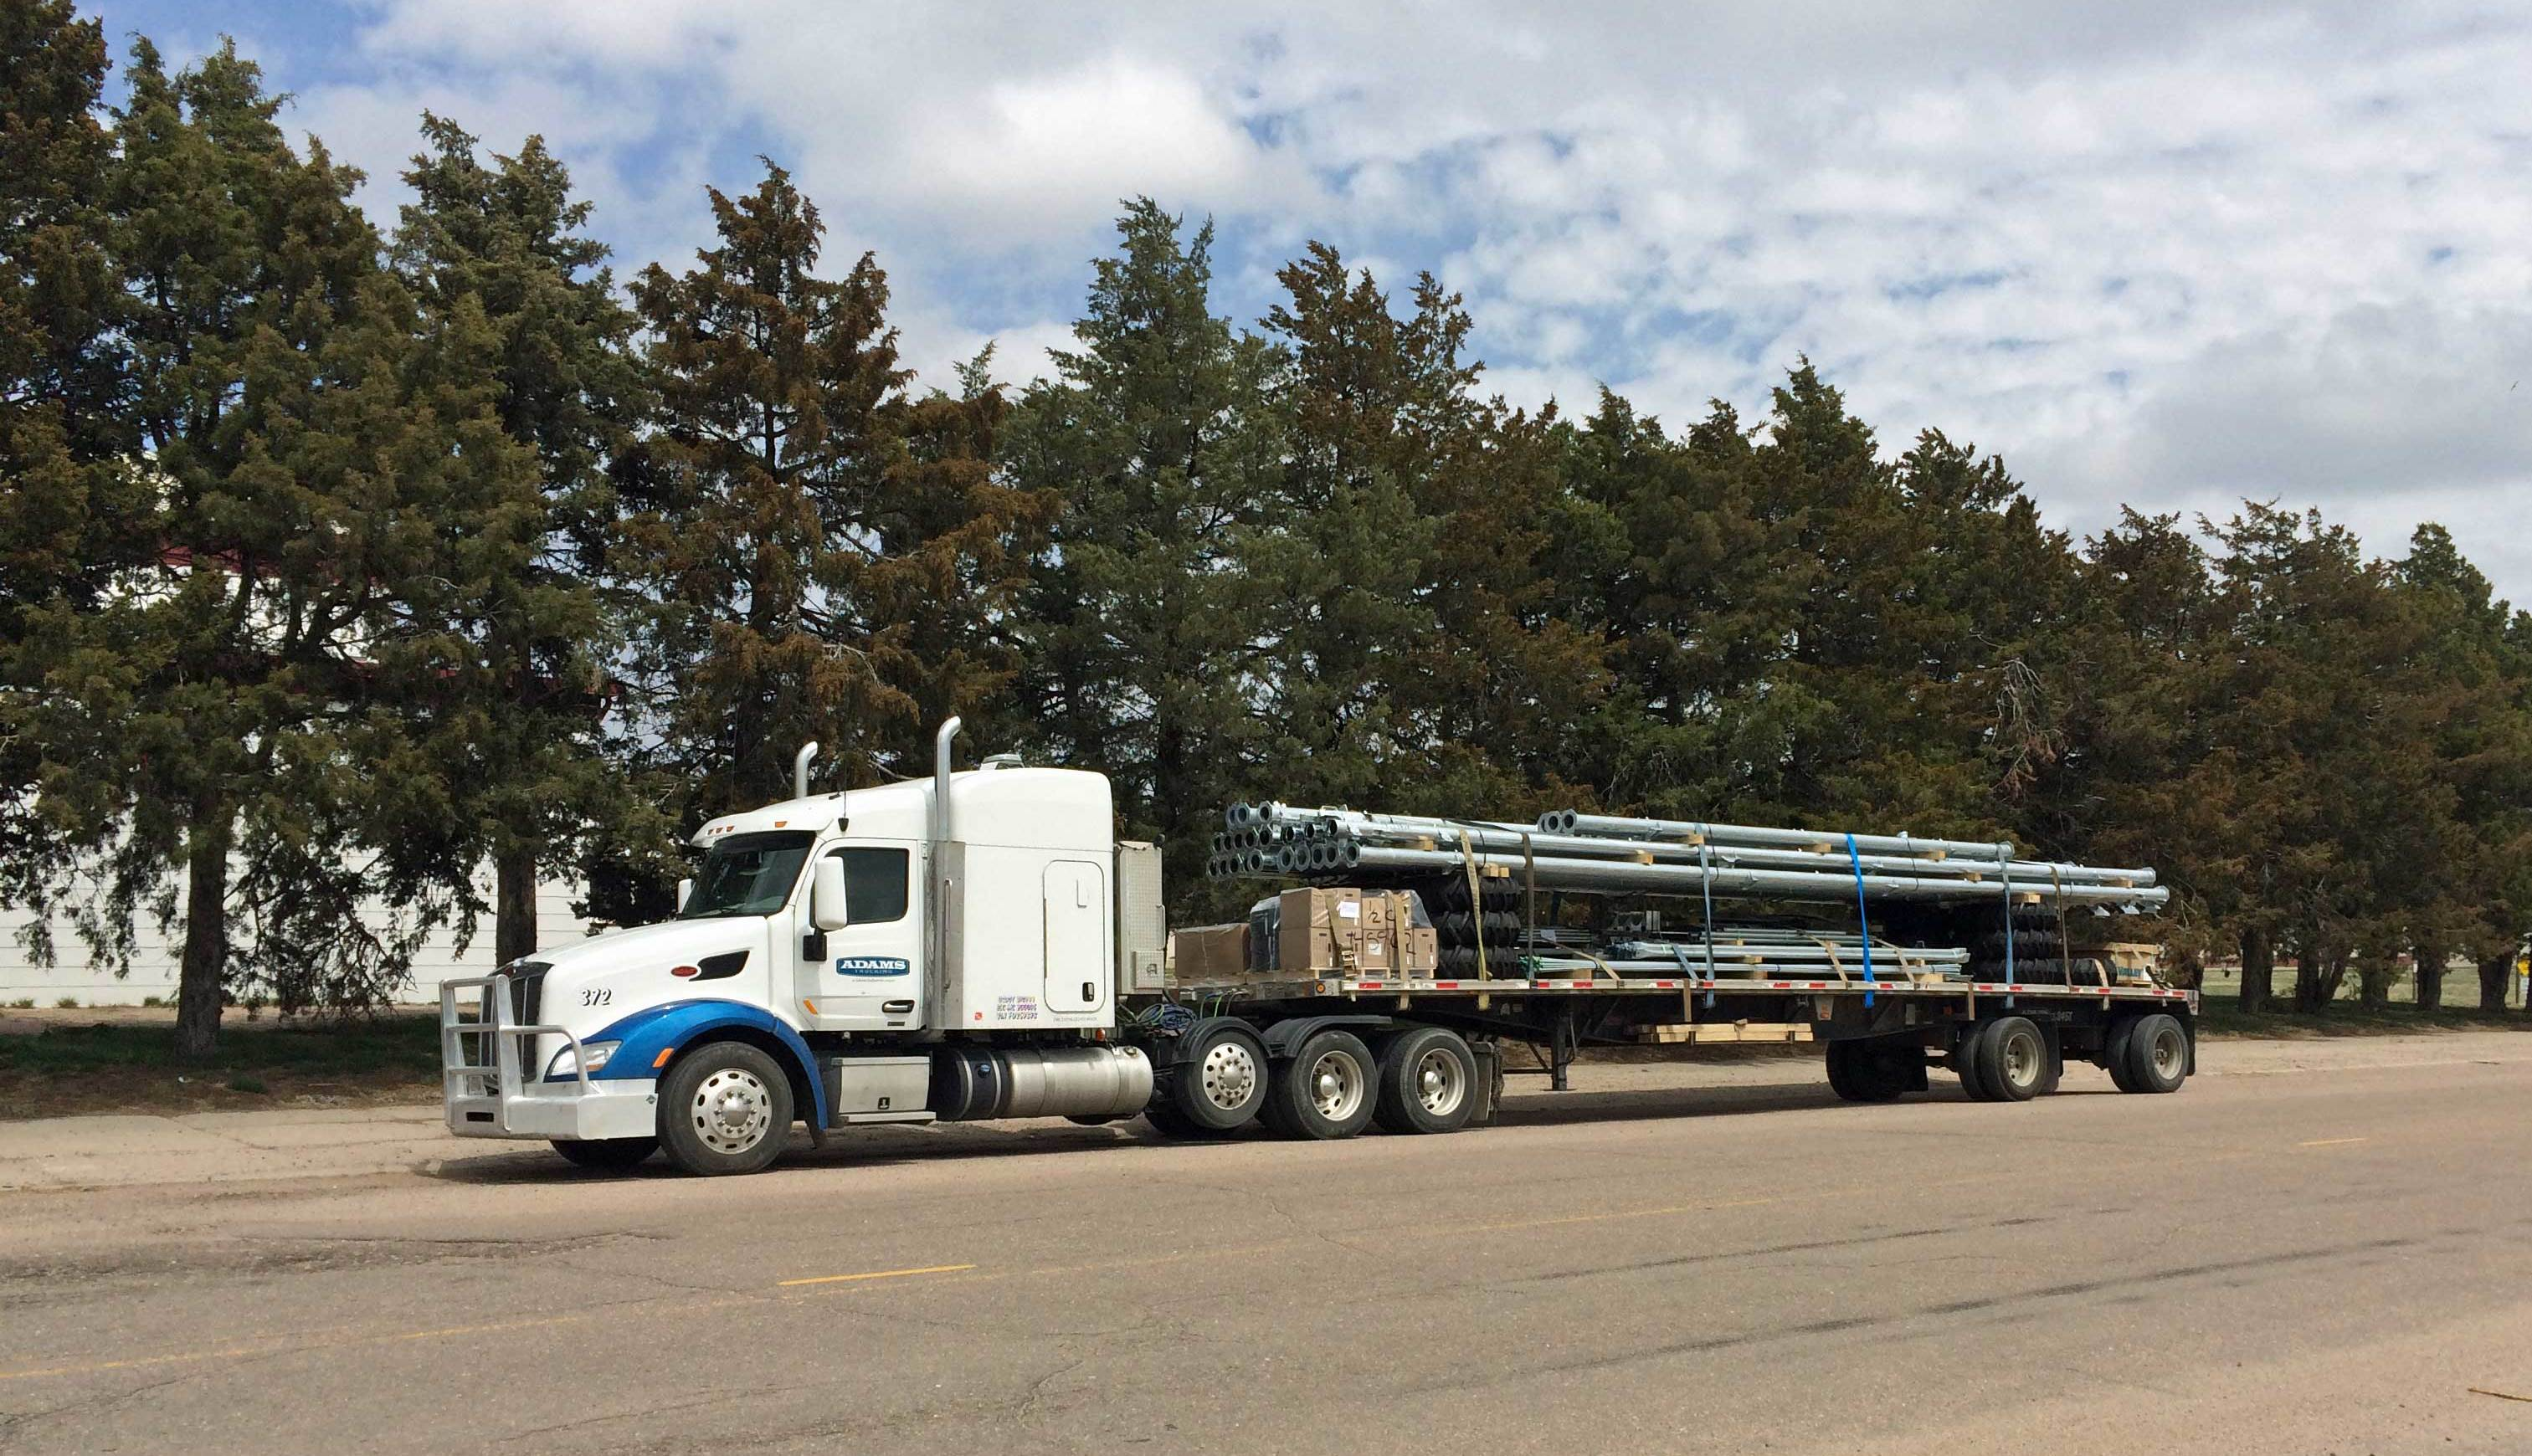 Adams Trucking - Flatbed and pnuematic trucking company